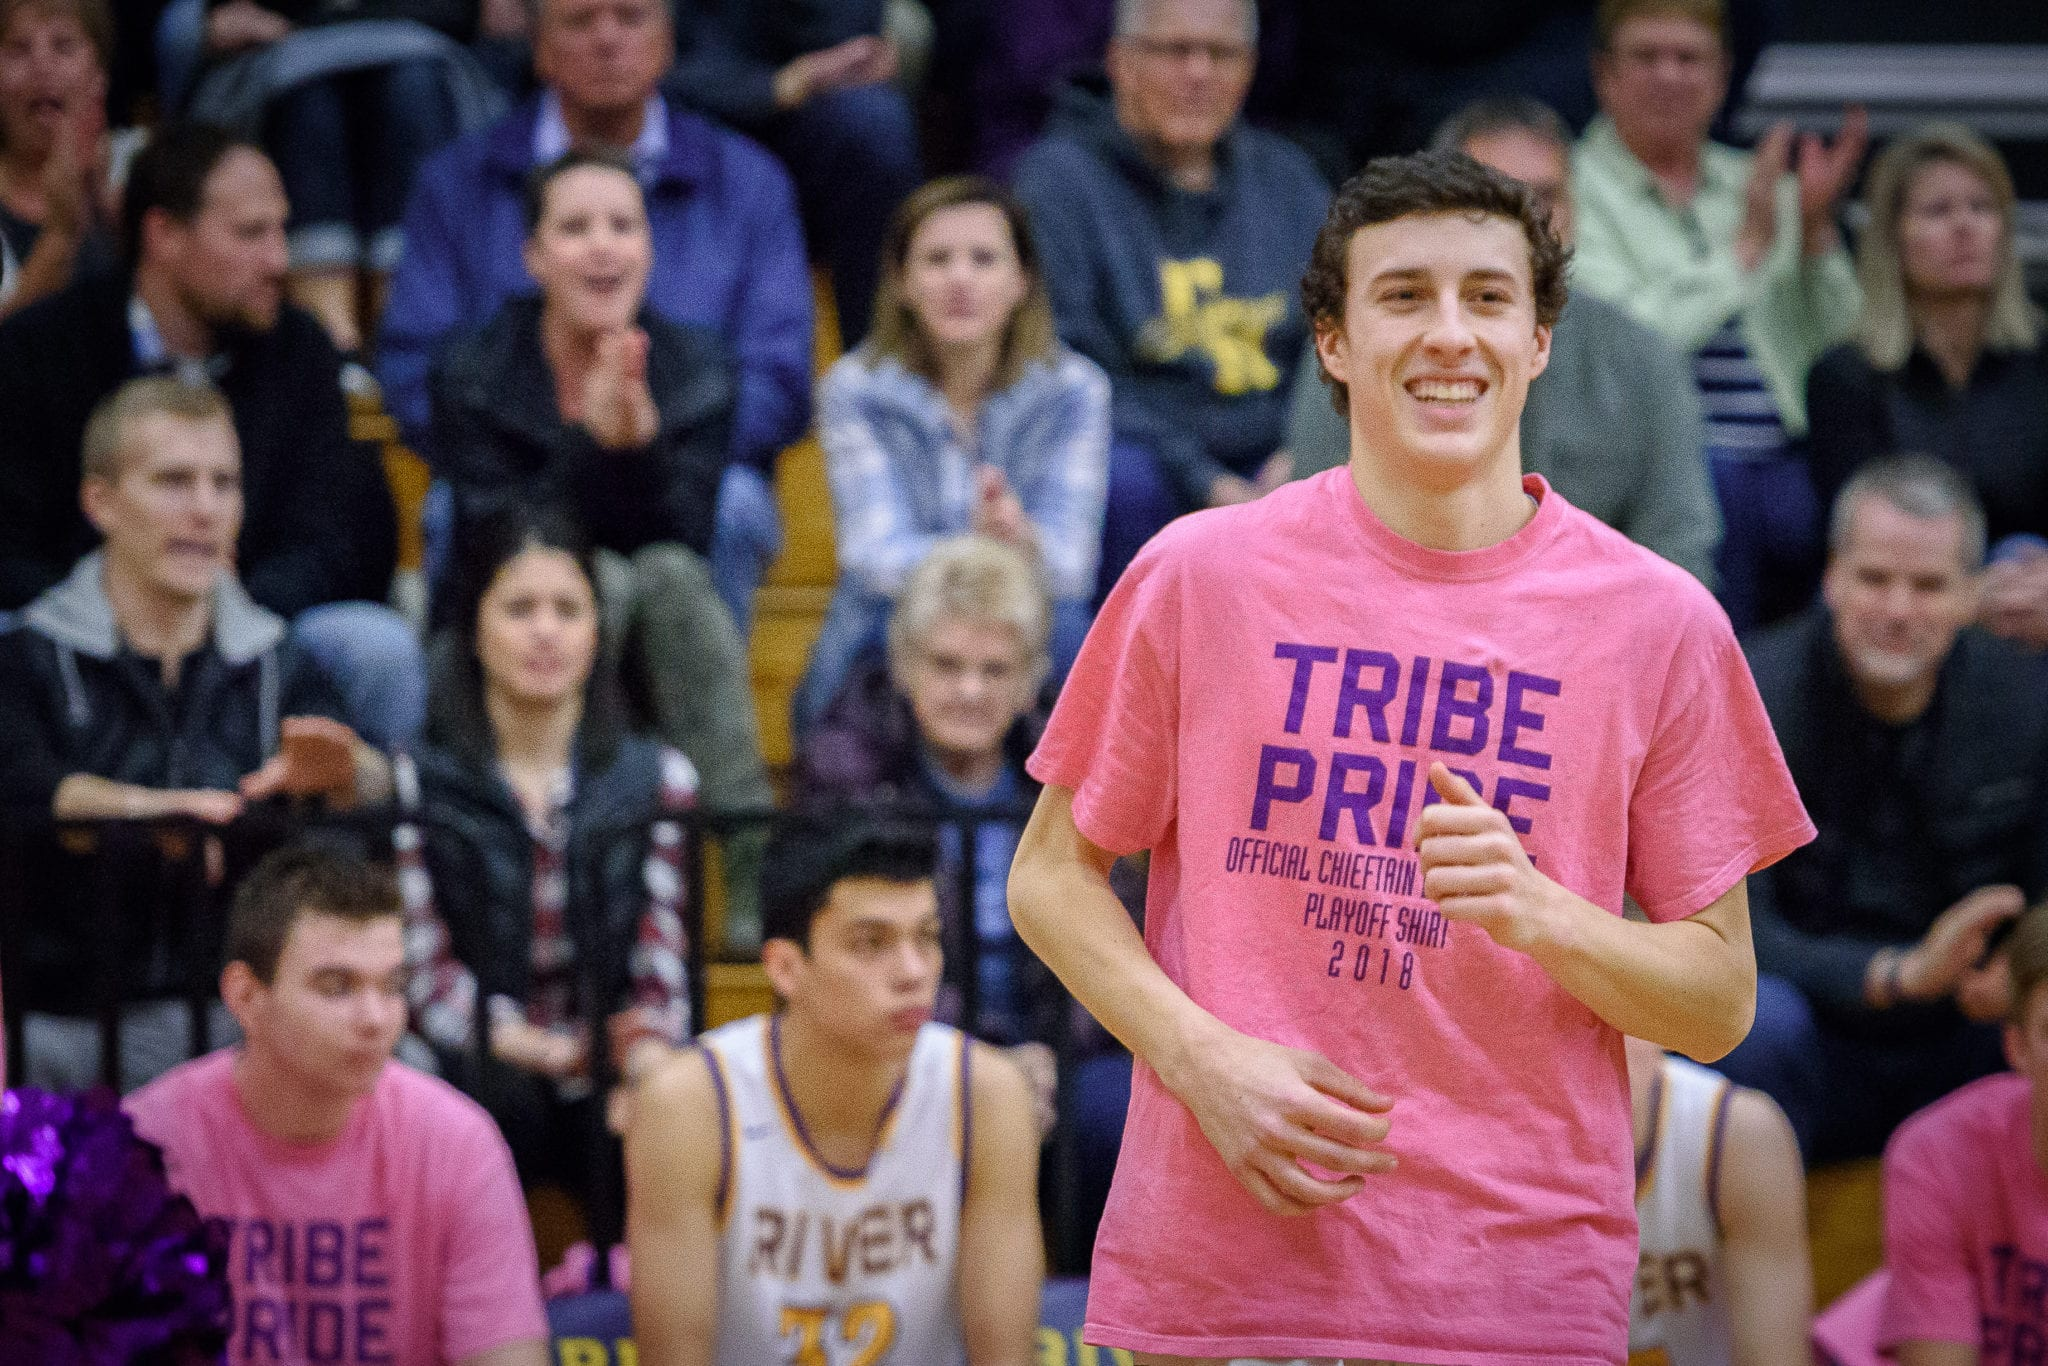 Alex Miller of Columbia River, shown here last season, says this is one of his favorite photos. He is wearing pink, in honor of his mother, while being introduced before a playoff game. His mother is in the stands, cheering for him. Jaime passed away last spring. Photo courtesy Ken Waz